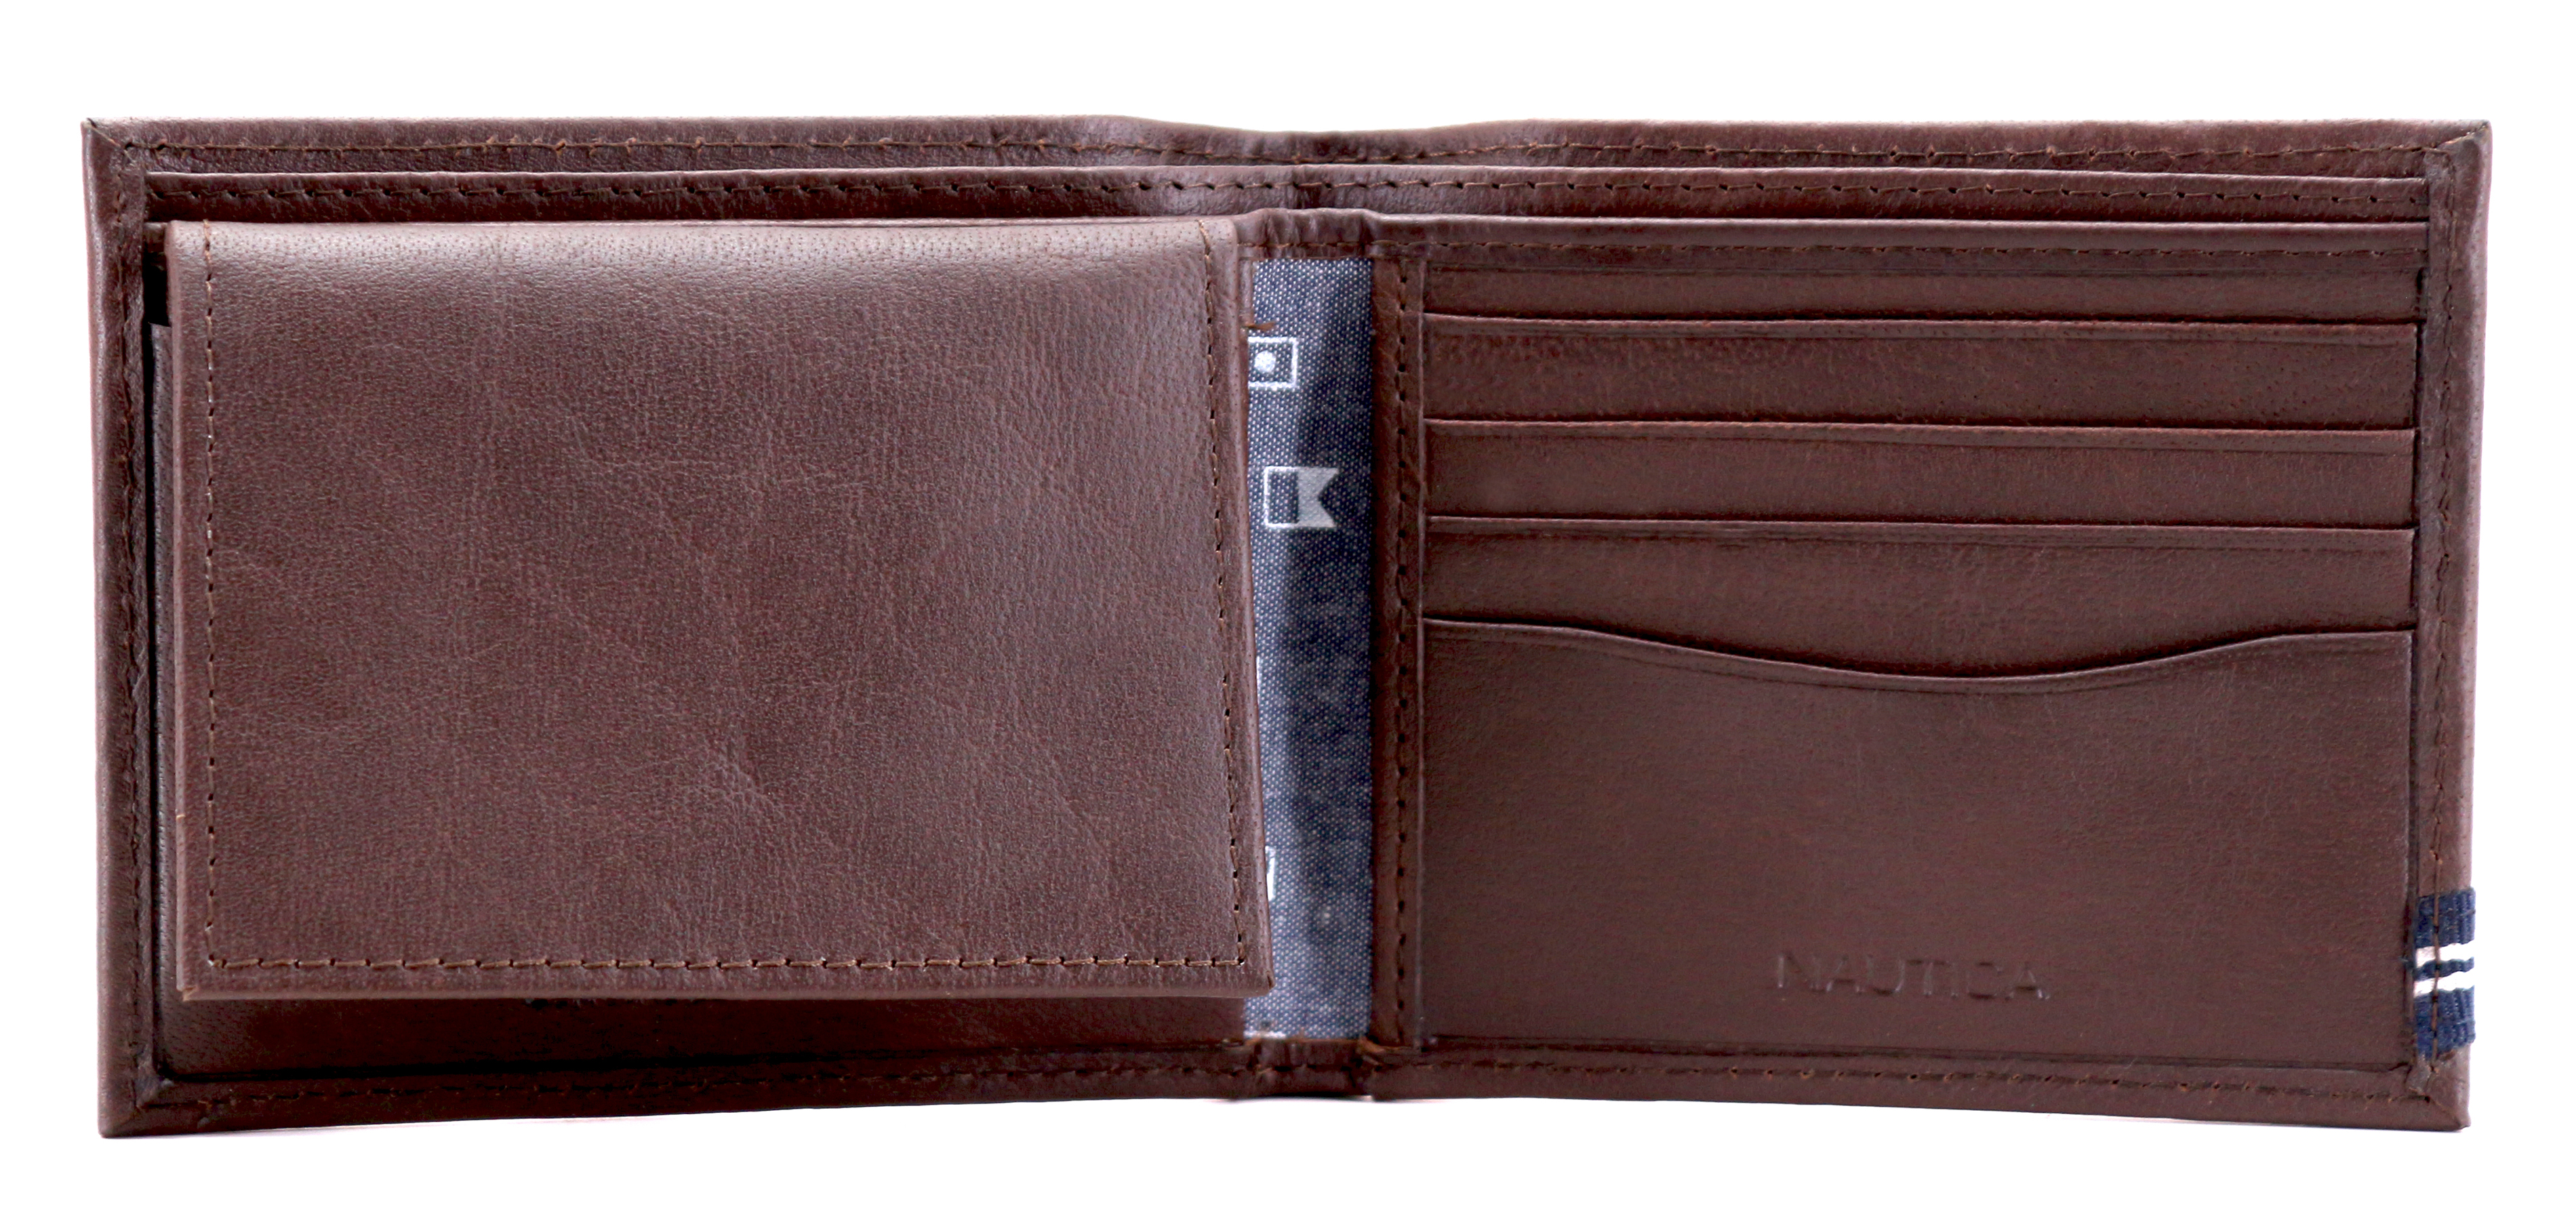 Nautica-Men-039-s-Genuine-Leather-Credit-Card-ID-Double-Billfold-Passcase-Wallet thumbnail 16